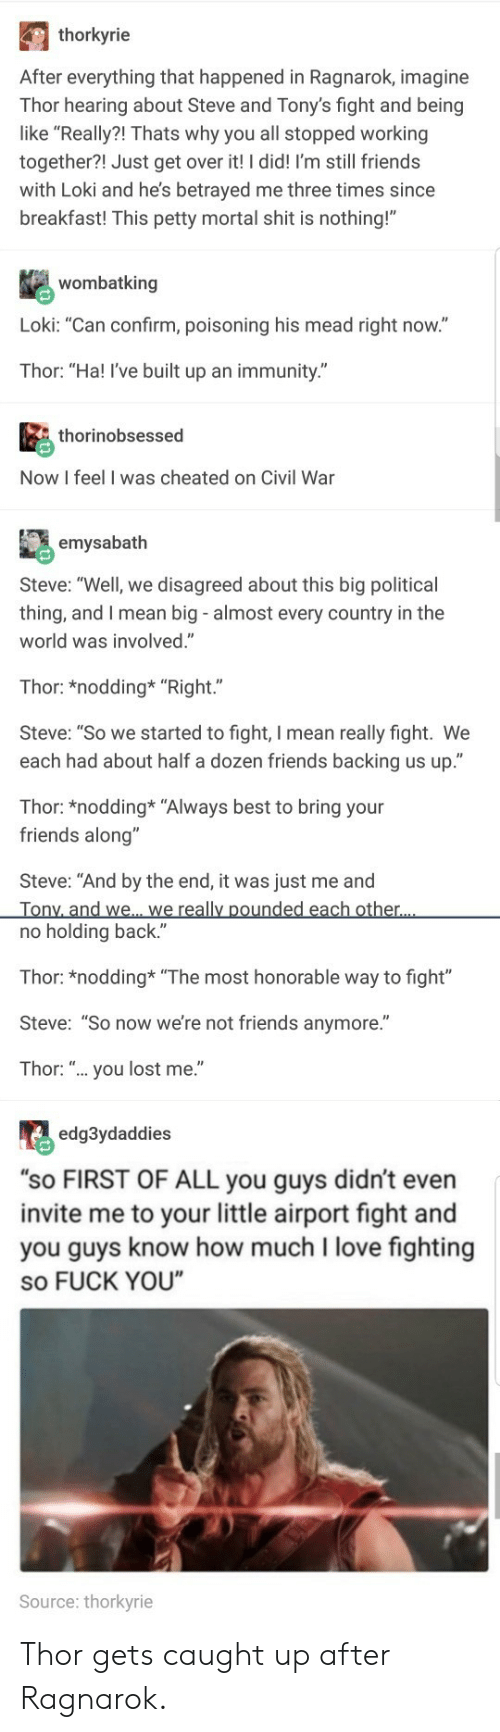 "honorable: thorkyrie  After everything that happened in Ragnarok, imagine  Thor hearing about Steve and Tony's fight and being  like ""Really?! Thats why you all stopped working  together?! Just get over it! I did! I'm still friends  with Loki and he's betrayed me three times since  breakfast! This petty mortal shit is nothing!""  wombatking  Loki: ""Can confirm, poisoning his mead right now.""  Thor: ""Ha! I've built up an immunity.""  thorinobsessed  Now I feel I was cheated on Civil War  emysabath  Steve: ""Well, we disagreed about this big political  thing, and I mean big - almost every country in the  world was involved.""  Thor: *nodding* ""Right.""  Steve: ""So we started to fight, I mean really fight. We  each had about half a dozen friends backing us up.""  Thor: *nodding* ""Always best to bring your  friends along""  Steve: ""And by the end, it was just me and  no holding back.""  Thor: *nodding ""The most honorable way to fight""  Steve: ""So now we're not friends anymore.""  Thor: "".. you lost me.""  edg3ydaddies  ""sO FIRST OF ALL you guys didn't even  invite me to your little airport fight and  you guys know how much I love fighting  so FUCK YOU  Source: thorkyrie Thor gets caught up after Ragnarok."